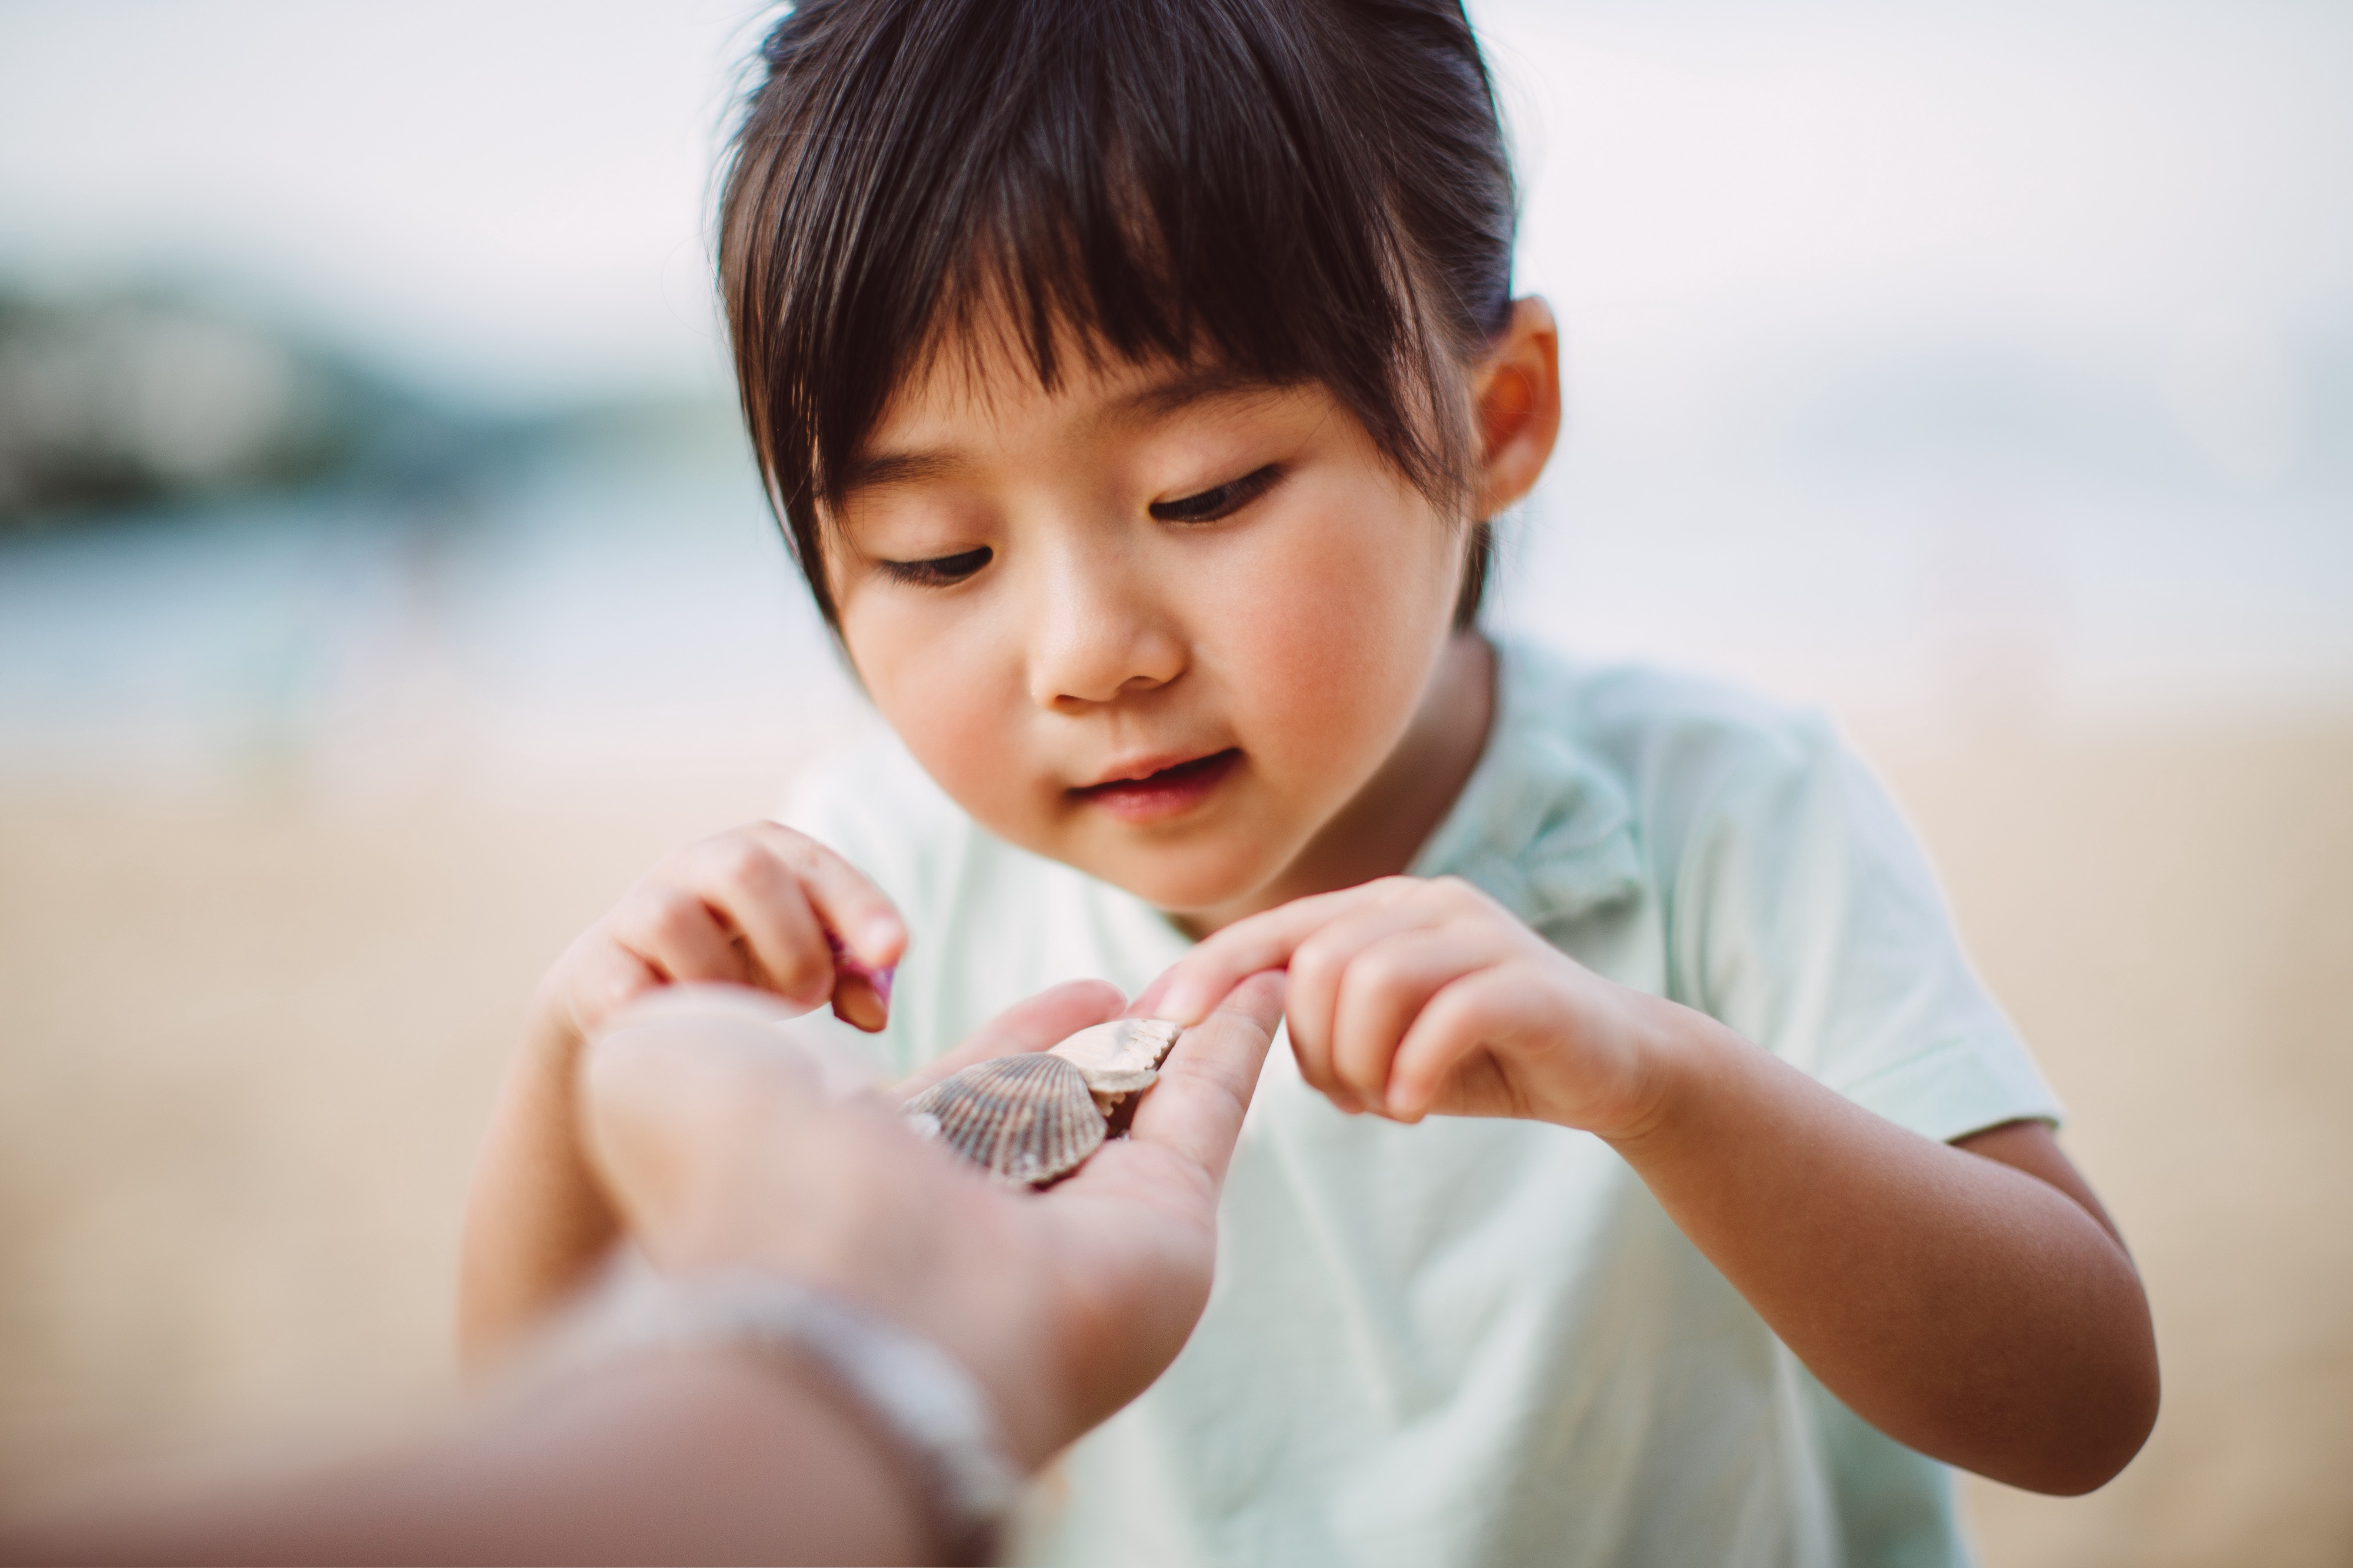 A  young girl chooses and picks a seashell from her father's hand.